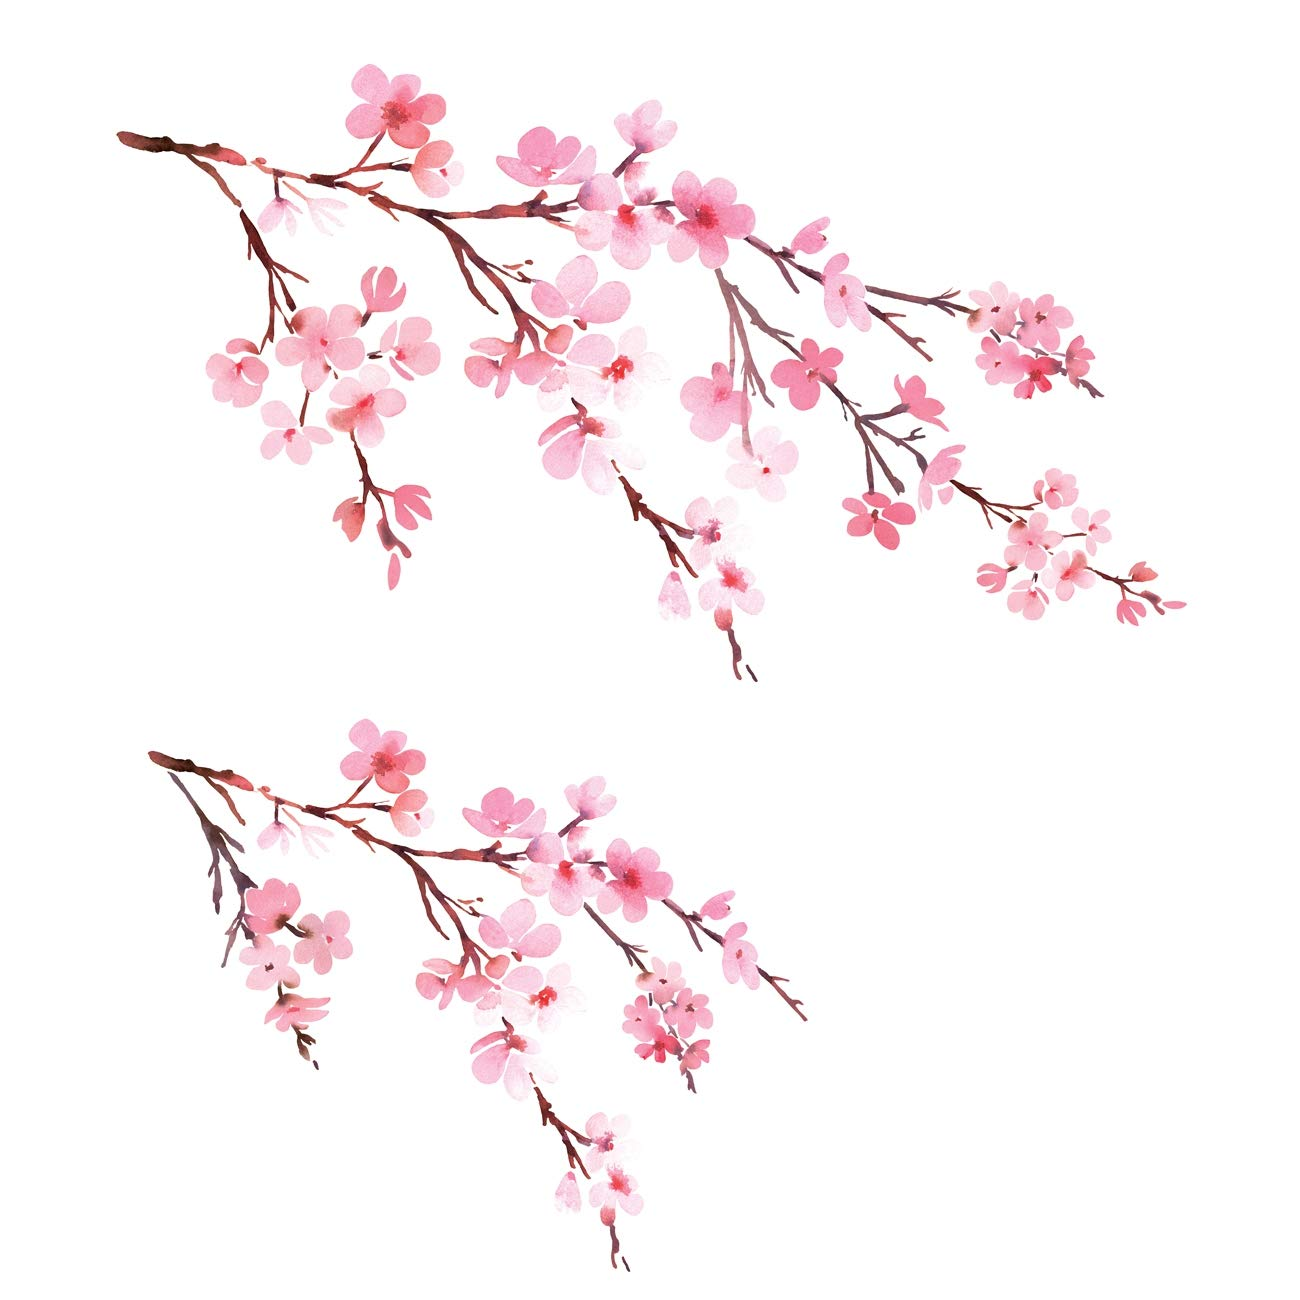 DECOWALL DWL-1903 Watercolor Cherry Blossoms Kids Wall Stickers Wall Decals Peel and Stick Removable Wall Stickers for Kids Nursery Bedroom Living Room